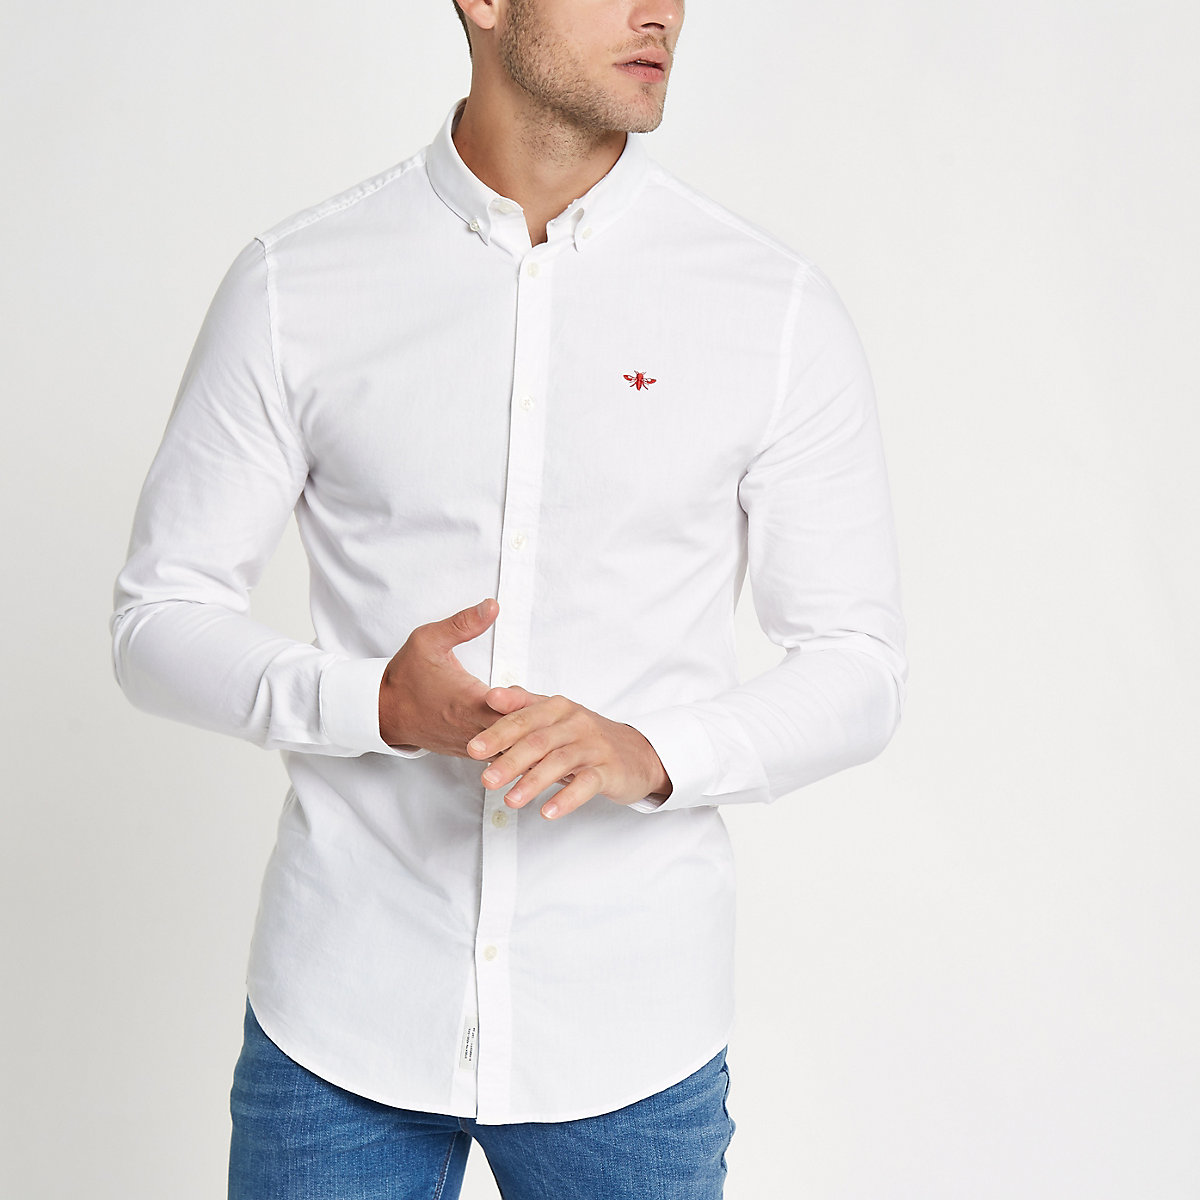 White embroidered long sleeve Oxford shirt